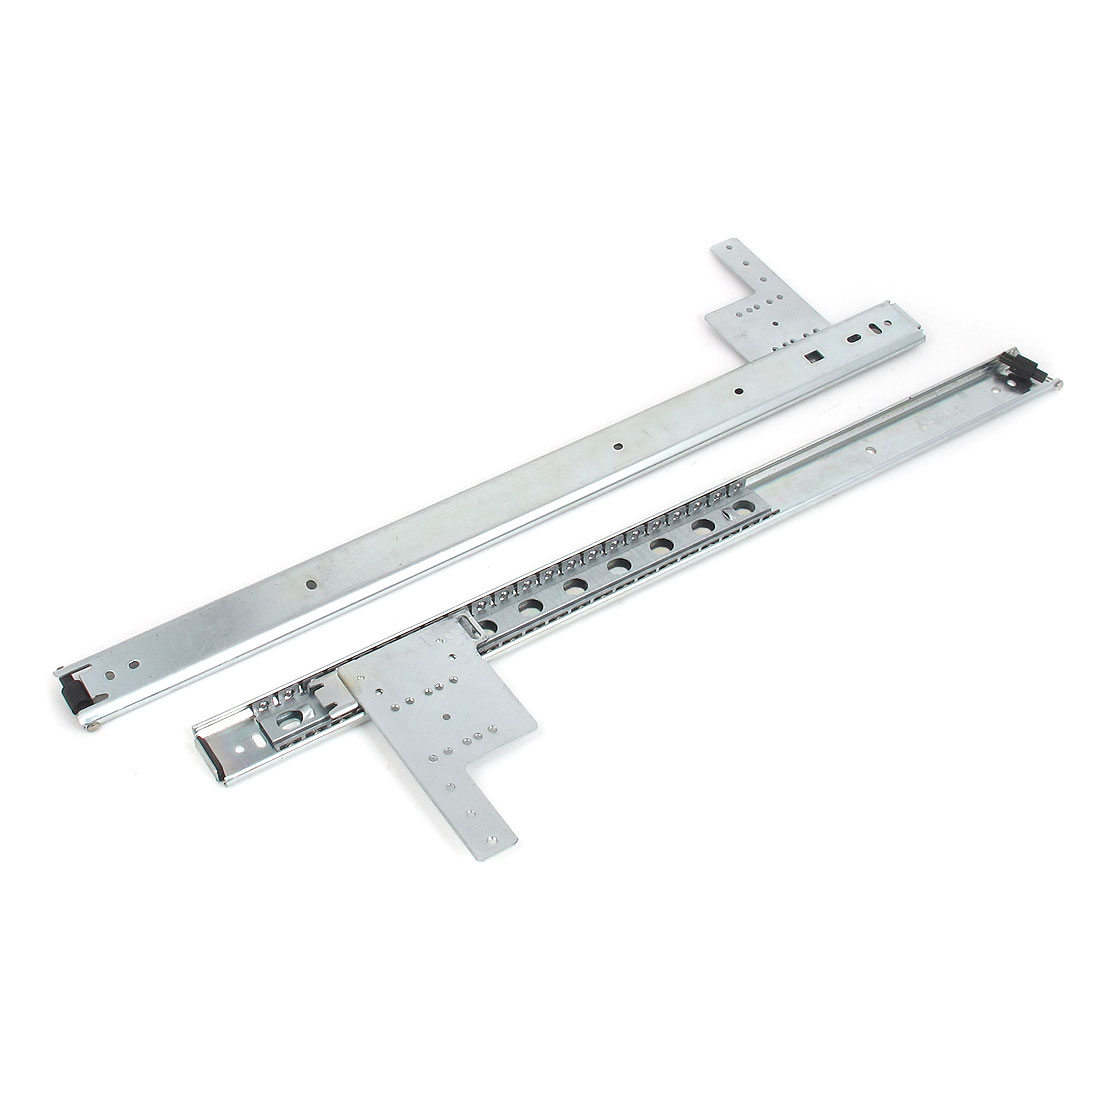 "2 Pcs 20"" Length Metal Ball Bearing Drawer Furniture Slides Sliding Rail Track Hardware Tool"